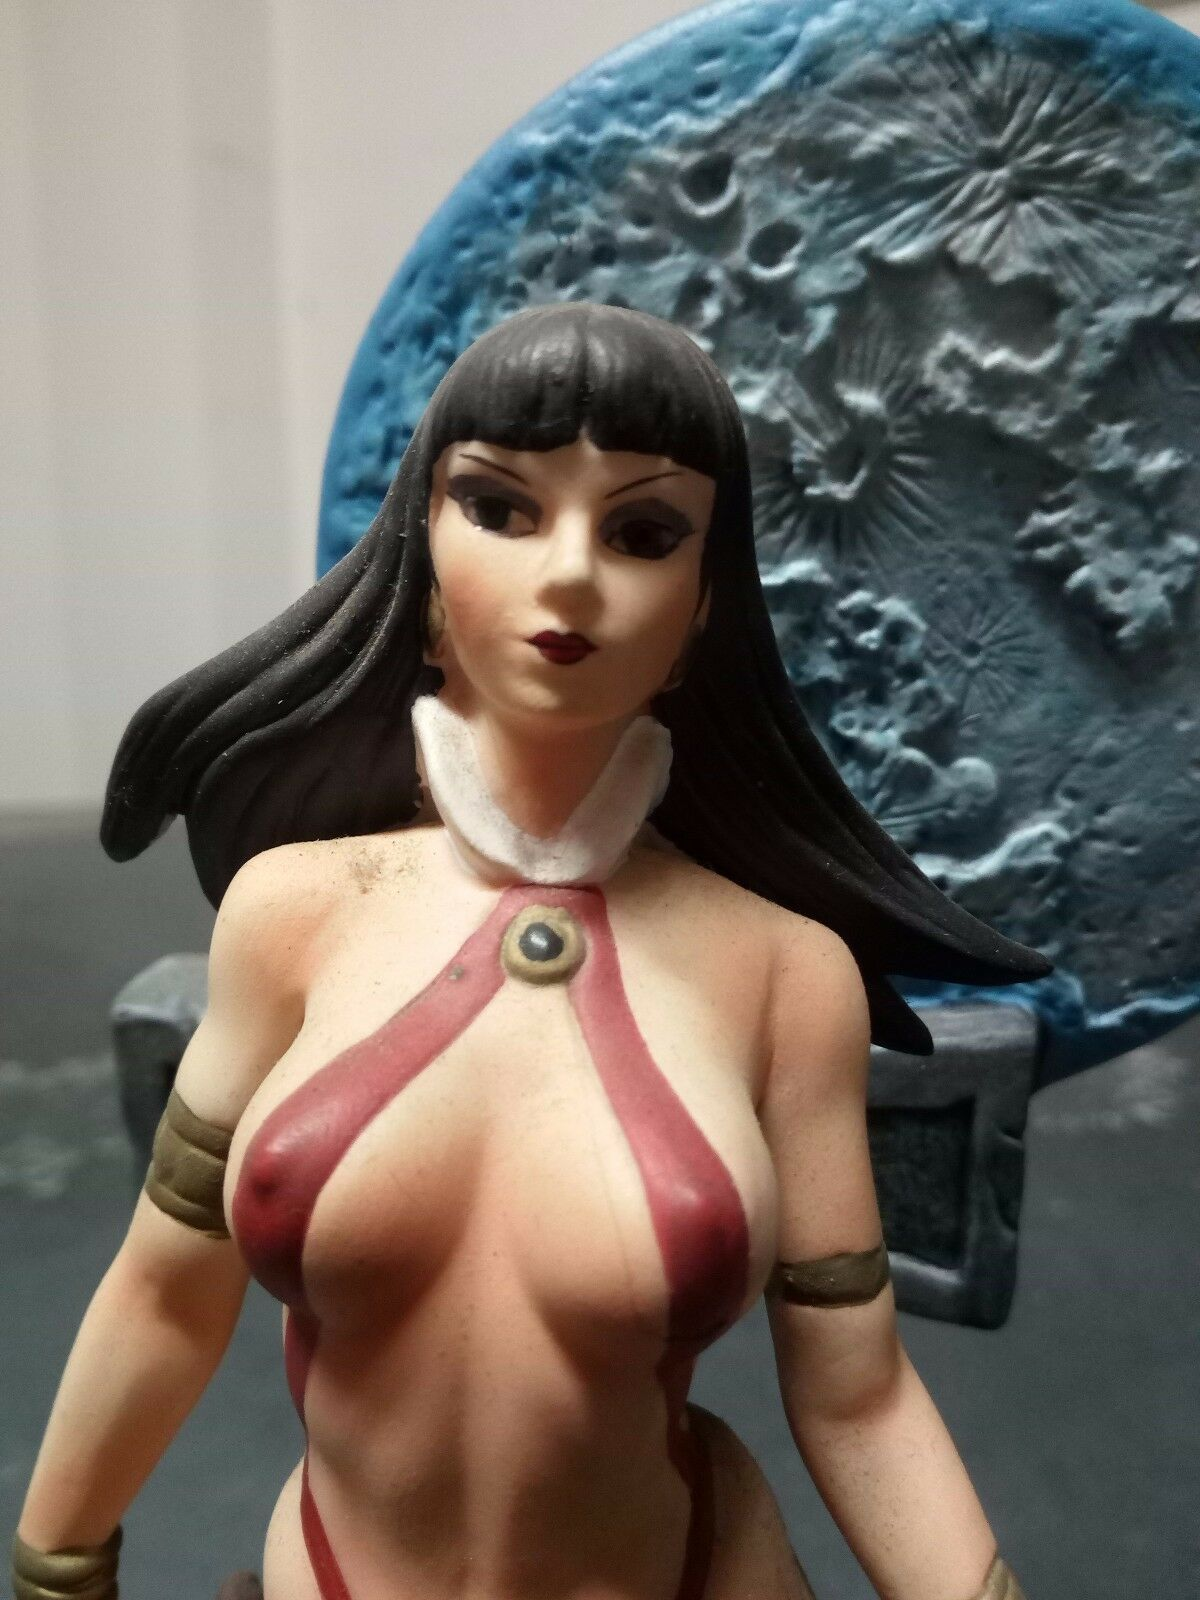 Vampirella Moore Creations 2001 Limited Edition 1594 / 5000 Porcelain 8